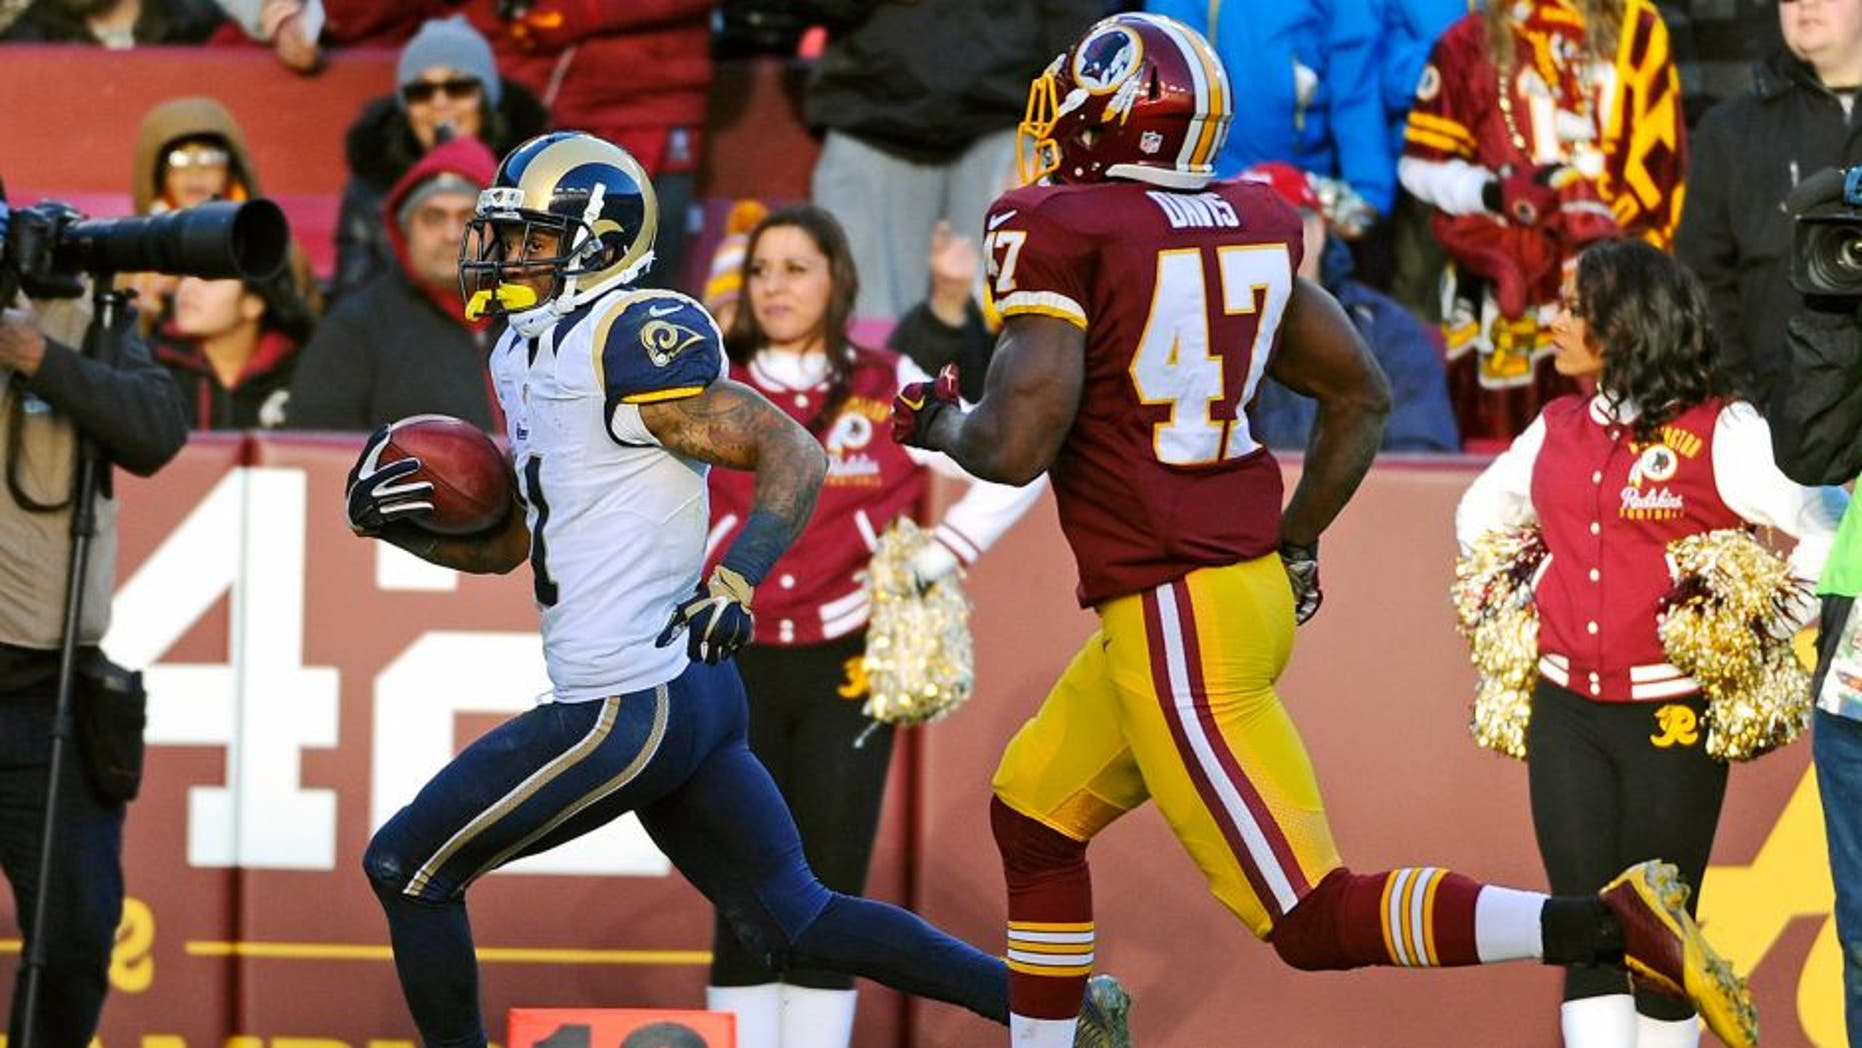 Dec 7, 2014; Landover, MD, USA; St. Louis Rams wide receiver Tavon Austin (11) returns a punt for a touchdown as Washington Redskins defensive back Akeem Davis (47) chases during the second half at FedEx Field. Mandatory Credit: Brad Mills-USA TODAY Sports